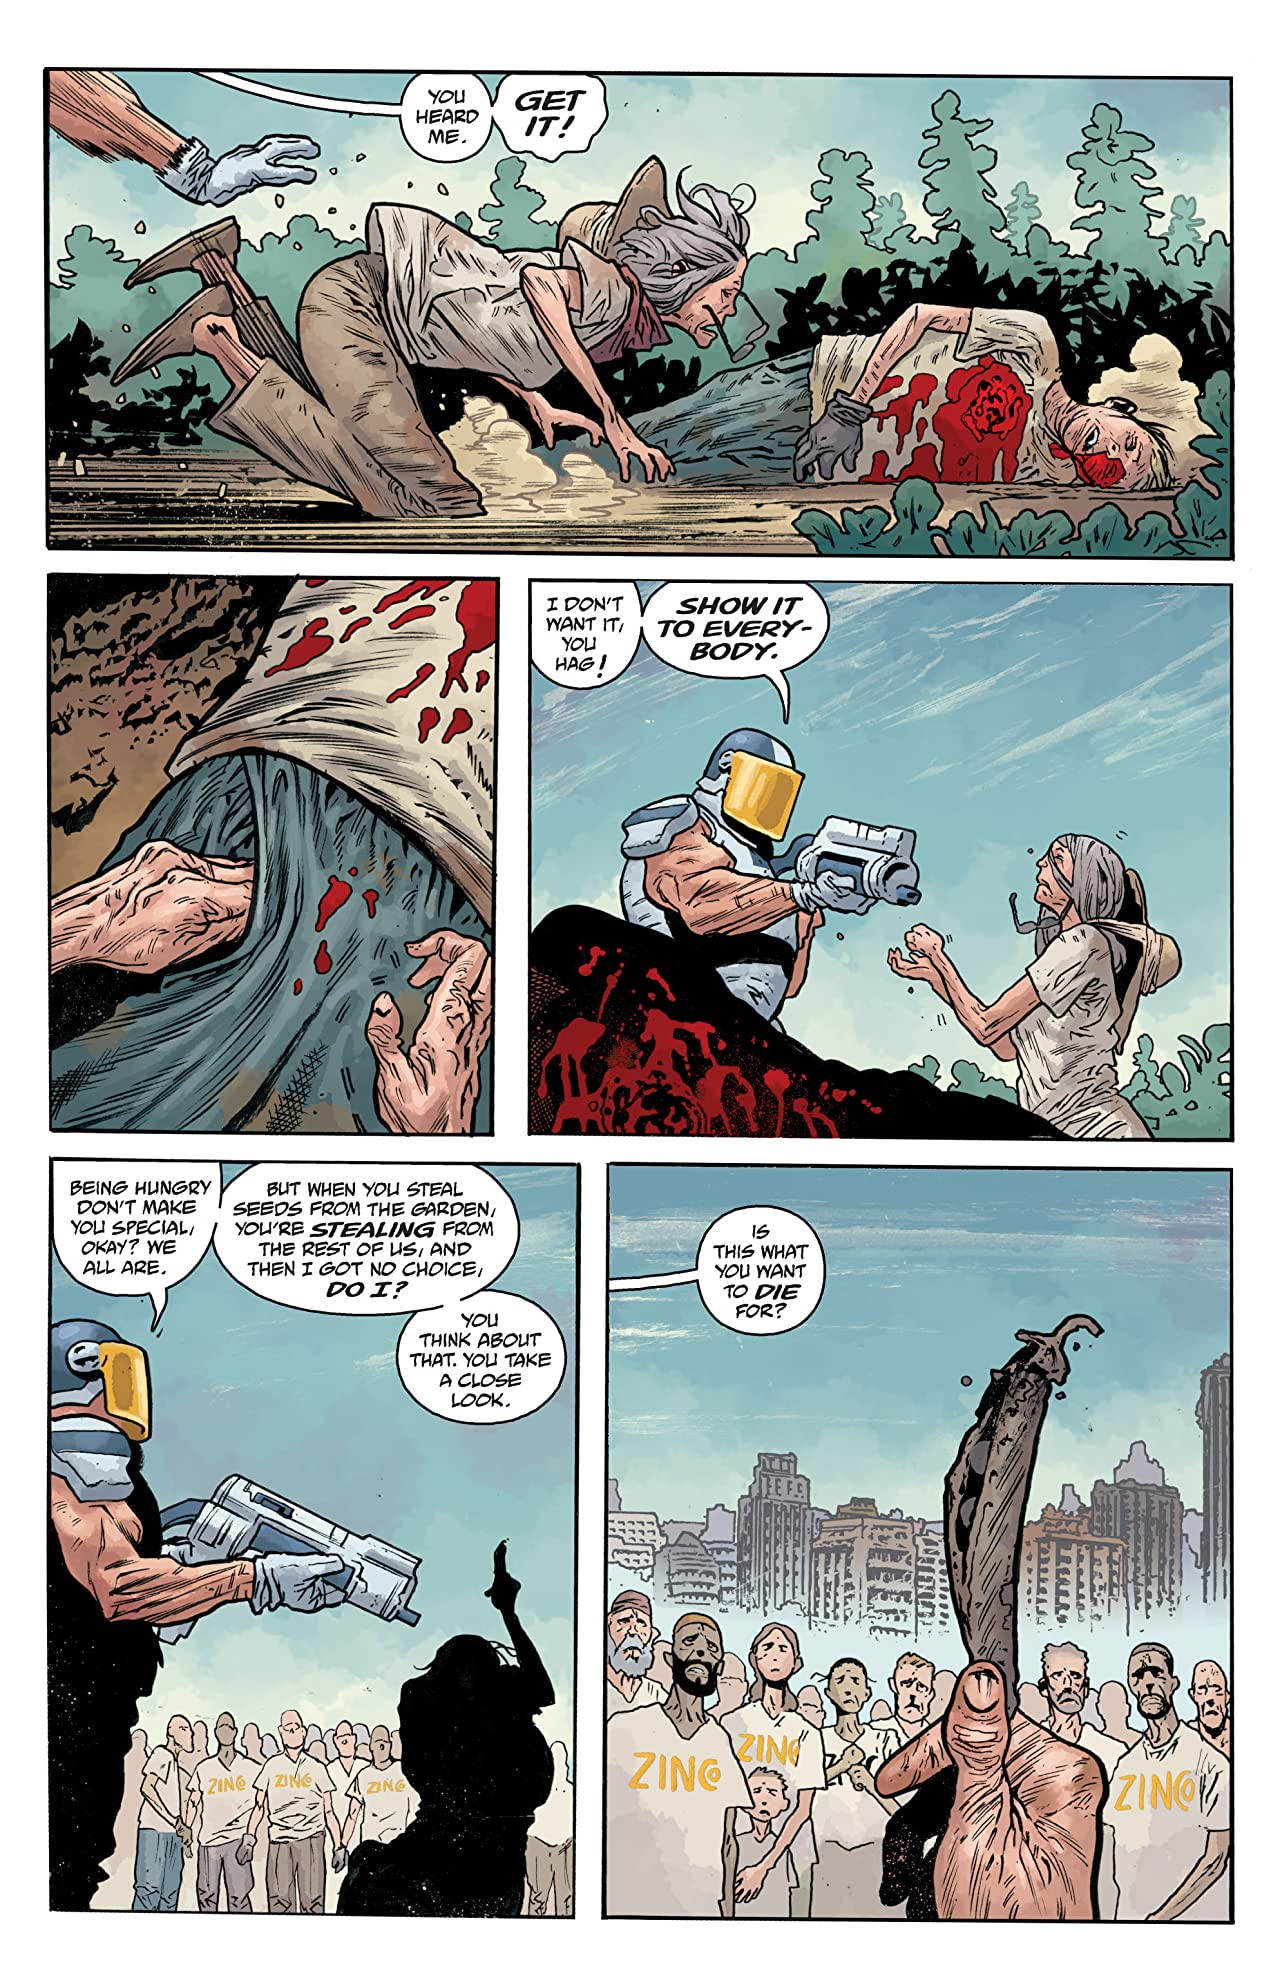 B.P.R.D.: Hell on Earth #116